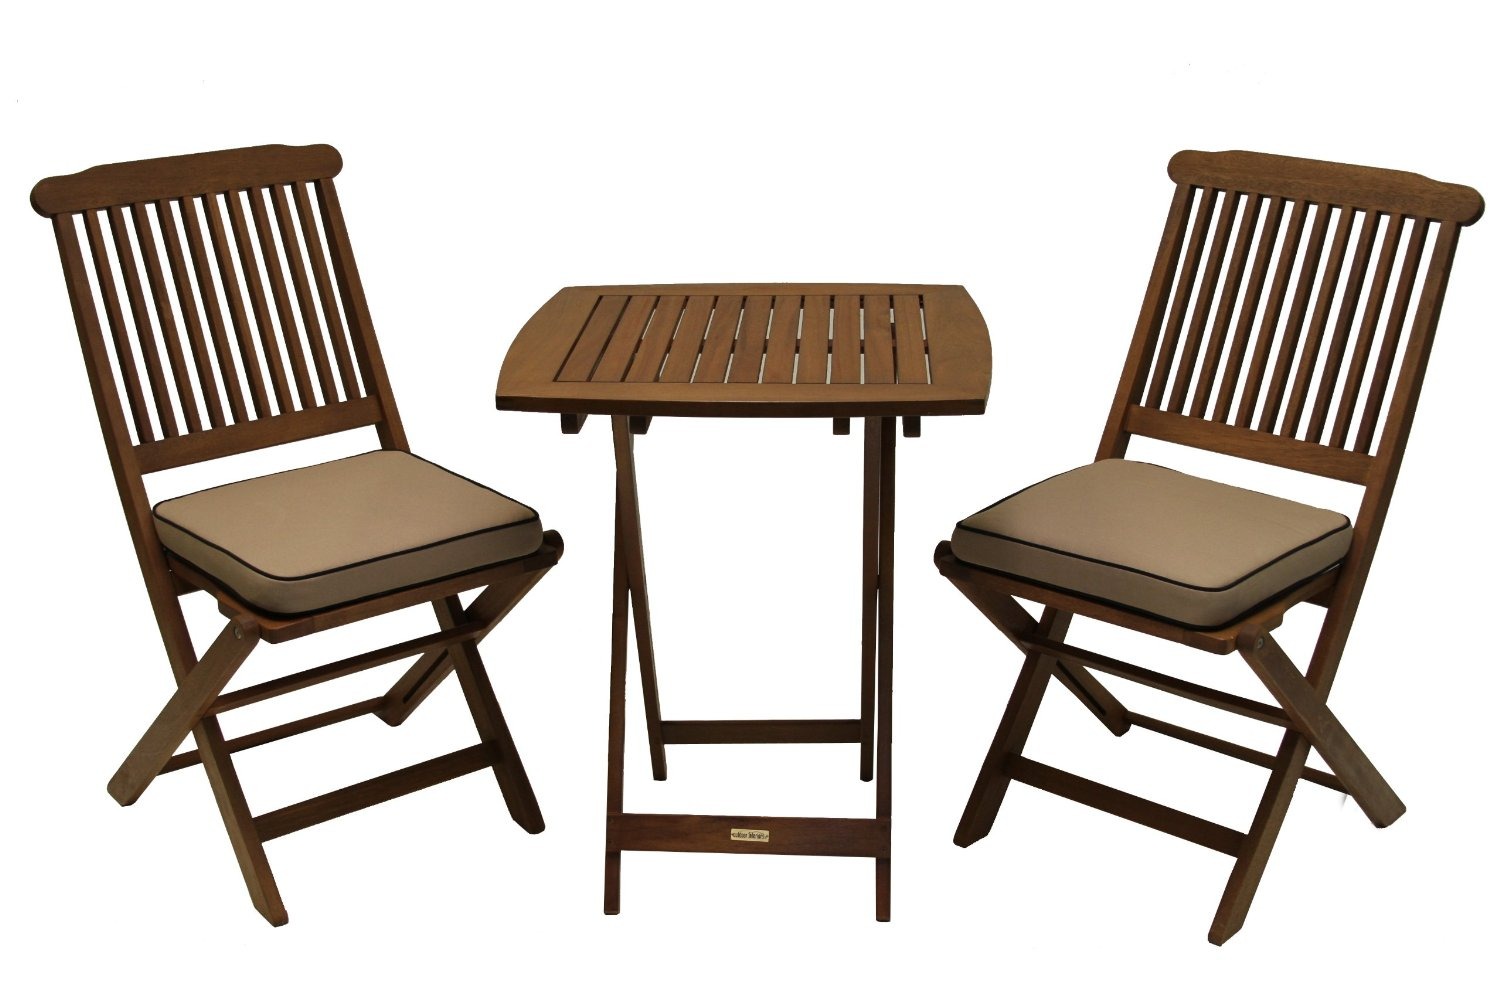 Outdoor eucalyptus 3 piece square bistro outdoor furniture for Outdoor furniture